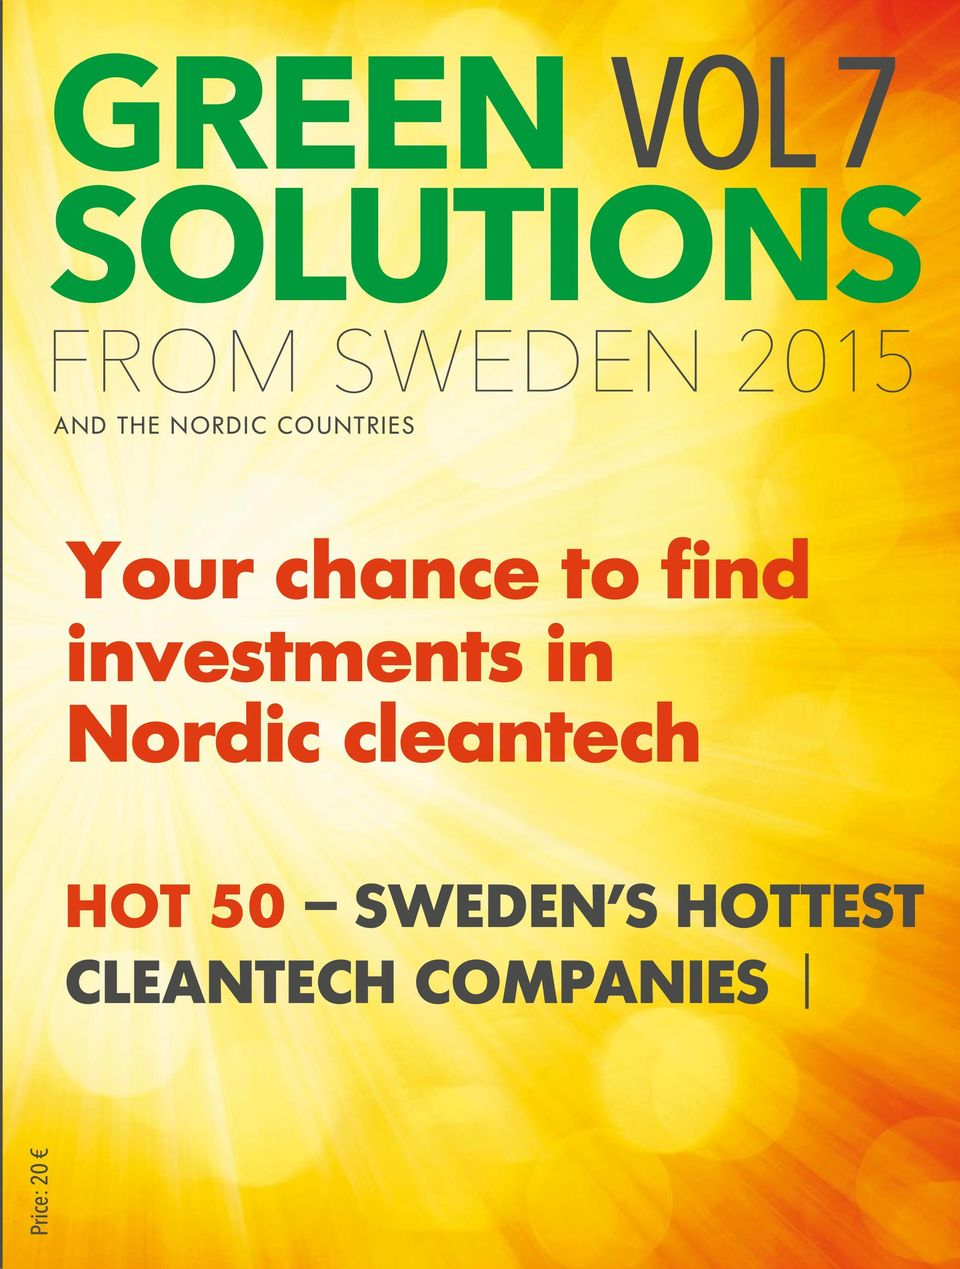 investments in Nordic cleantech HOT 50